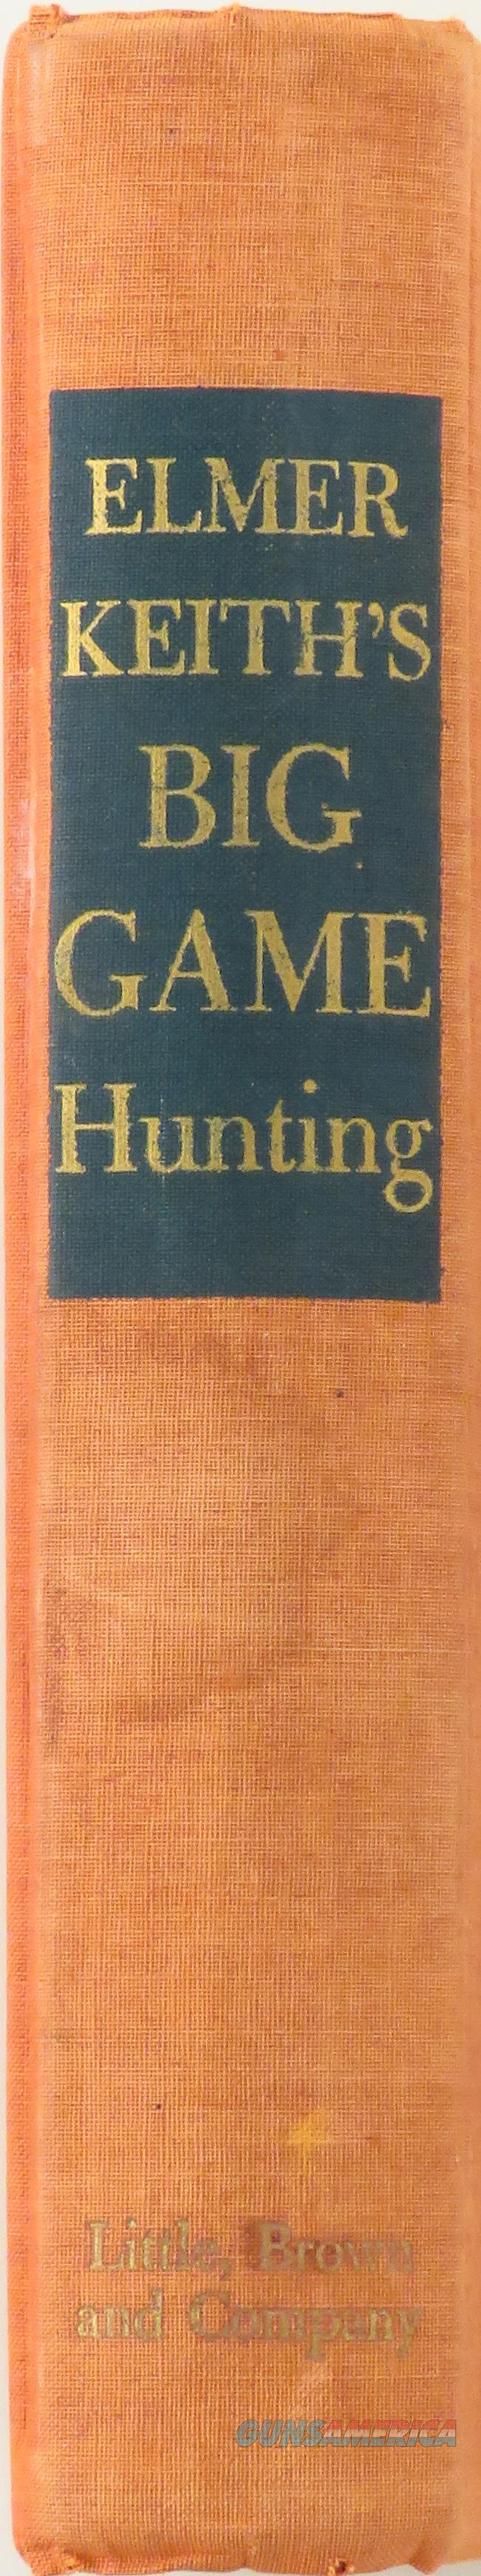 Elmer Keith's Big Game Hunting, 1954  Non-Guns > Books & Magazines